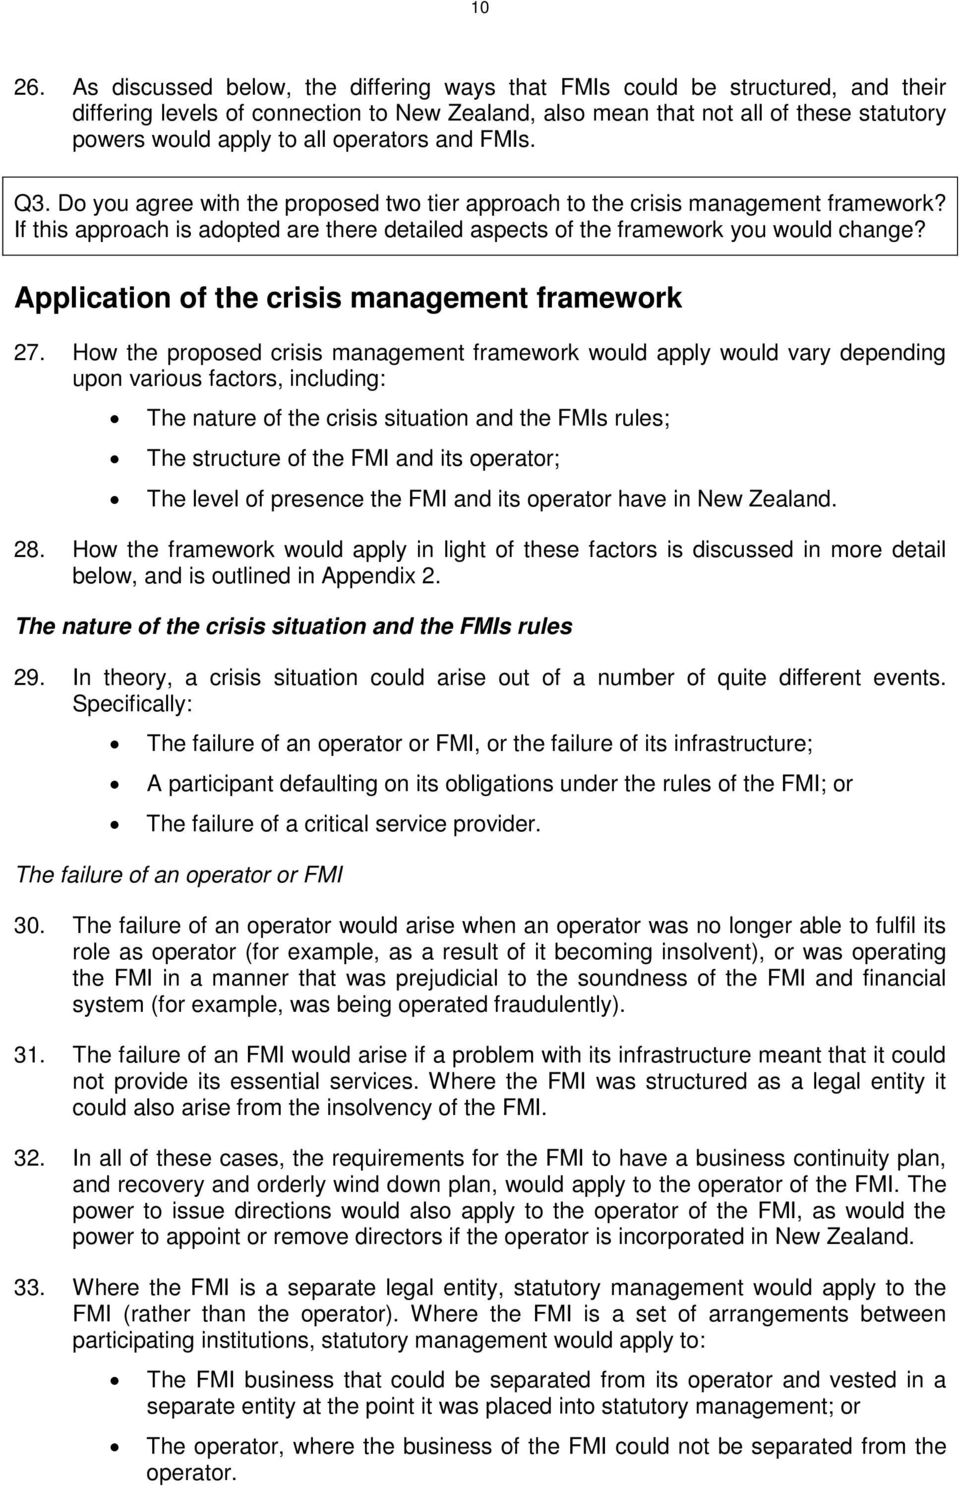 operators and FMIs. Q3. Do you agree with the proposed two tier approach to the crisis management framework? If this approach is adopted are there detailed aspects of the framework you would change?